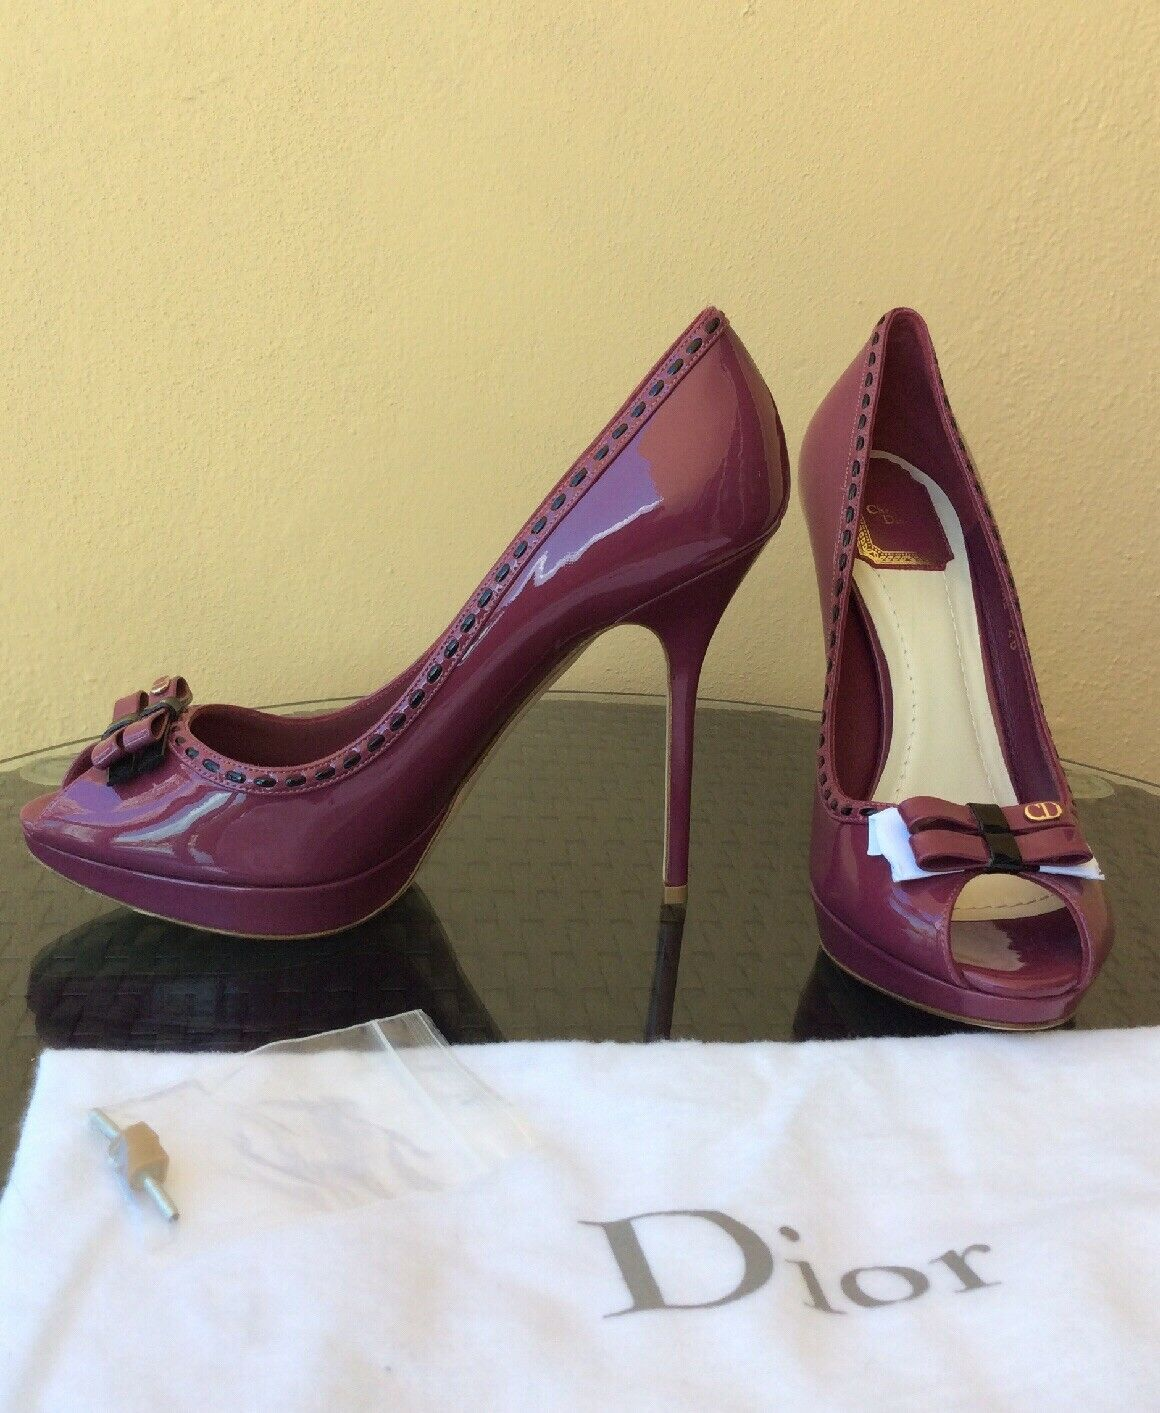 New & Authentic Christian Dior Miss Dior Open Toe Pumps shoes Size 39